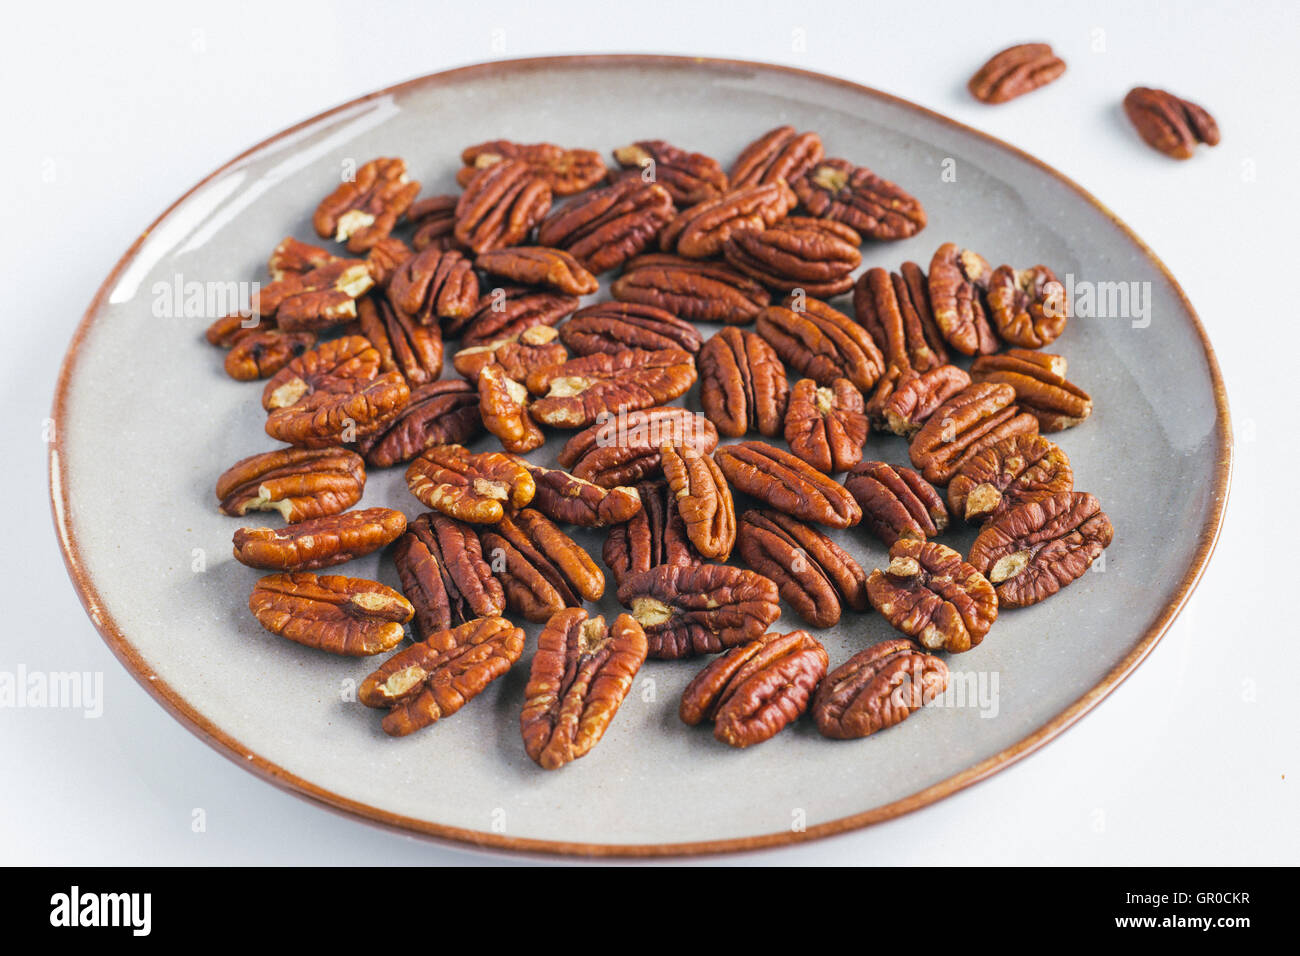 Whole pecans - Stock Image